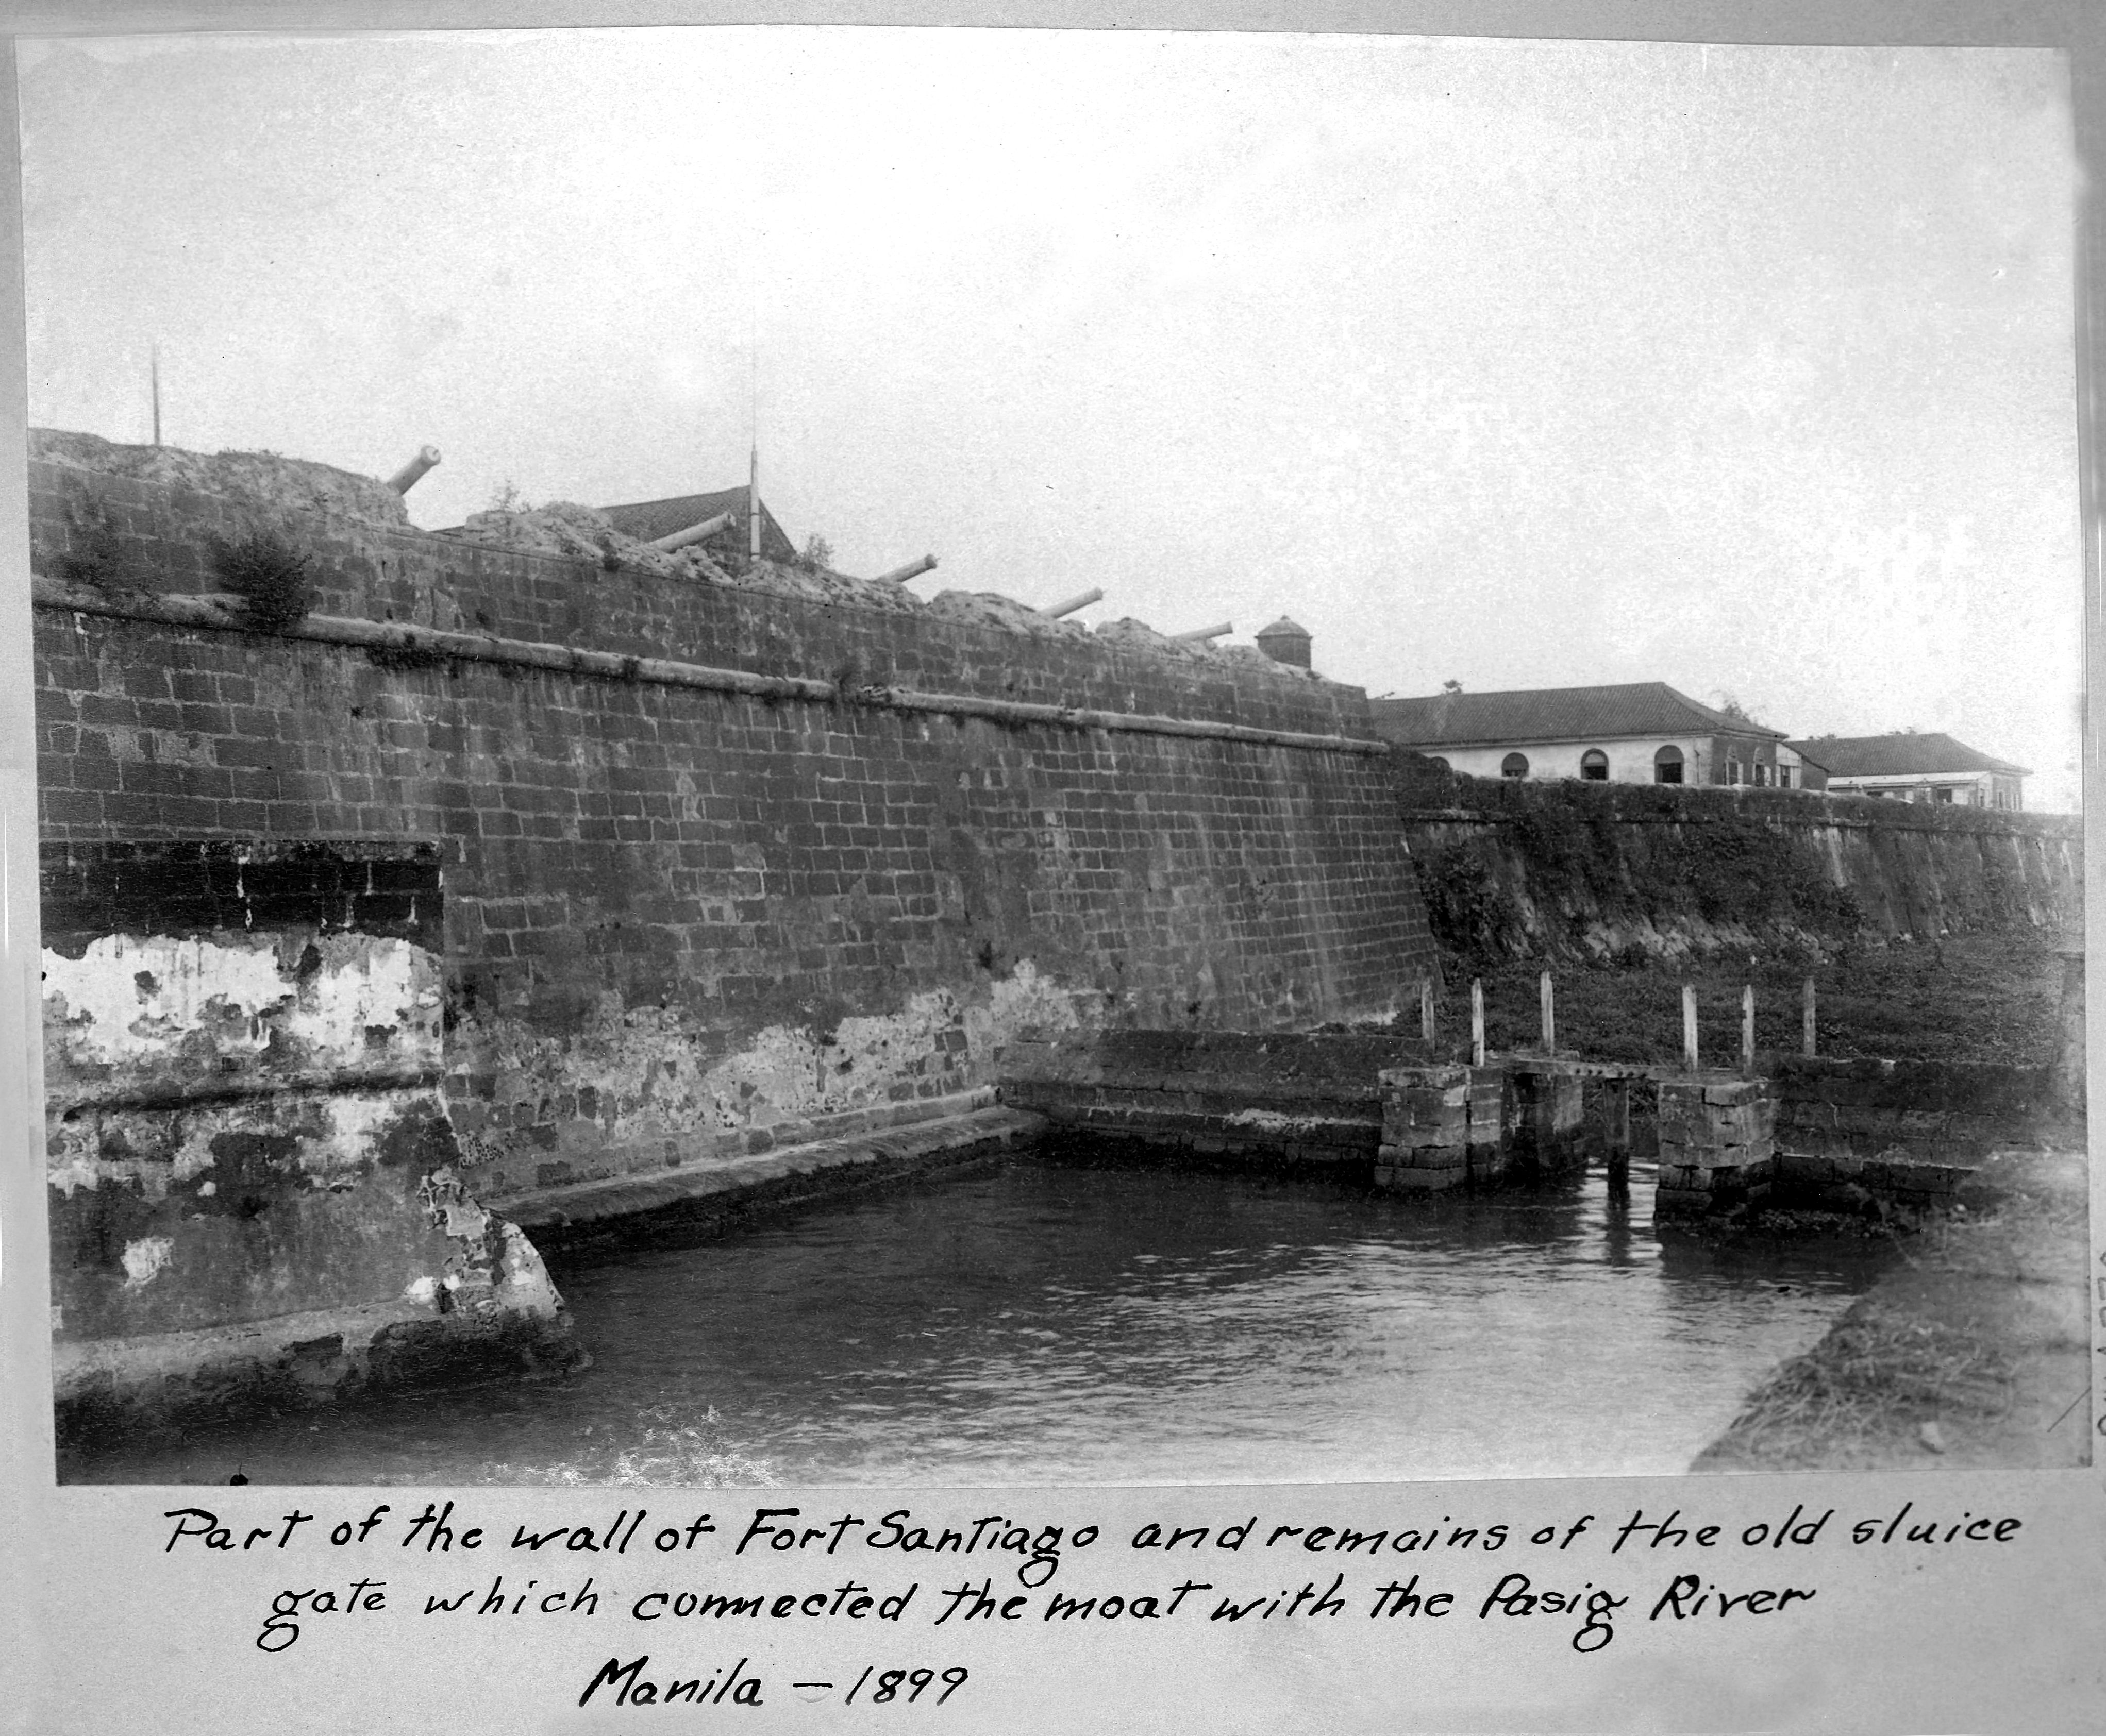 Photograph of a portion of the wall at Fort Santiago and remains of the old sluice gate which connected the moat with the Pasig River. Photo taken in Manila in 1899. The moat was later deemed a health hazard and breeding ground for mosquitos. It was later filled in and is now a gold course.